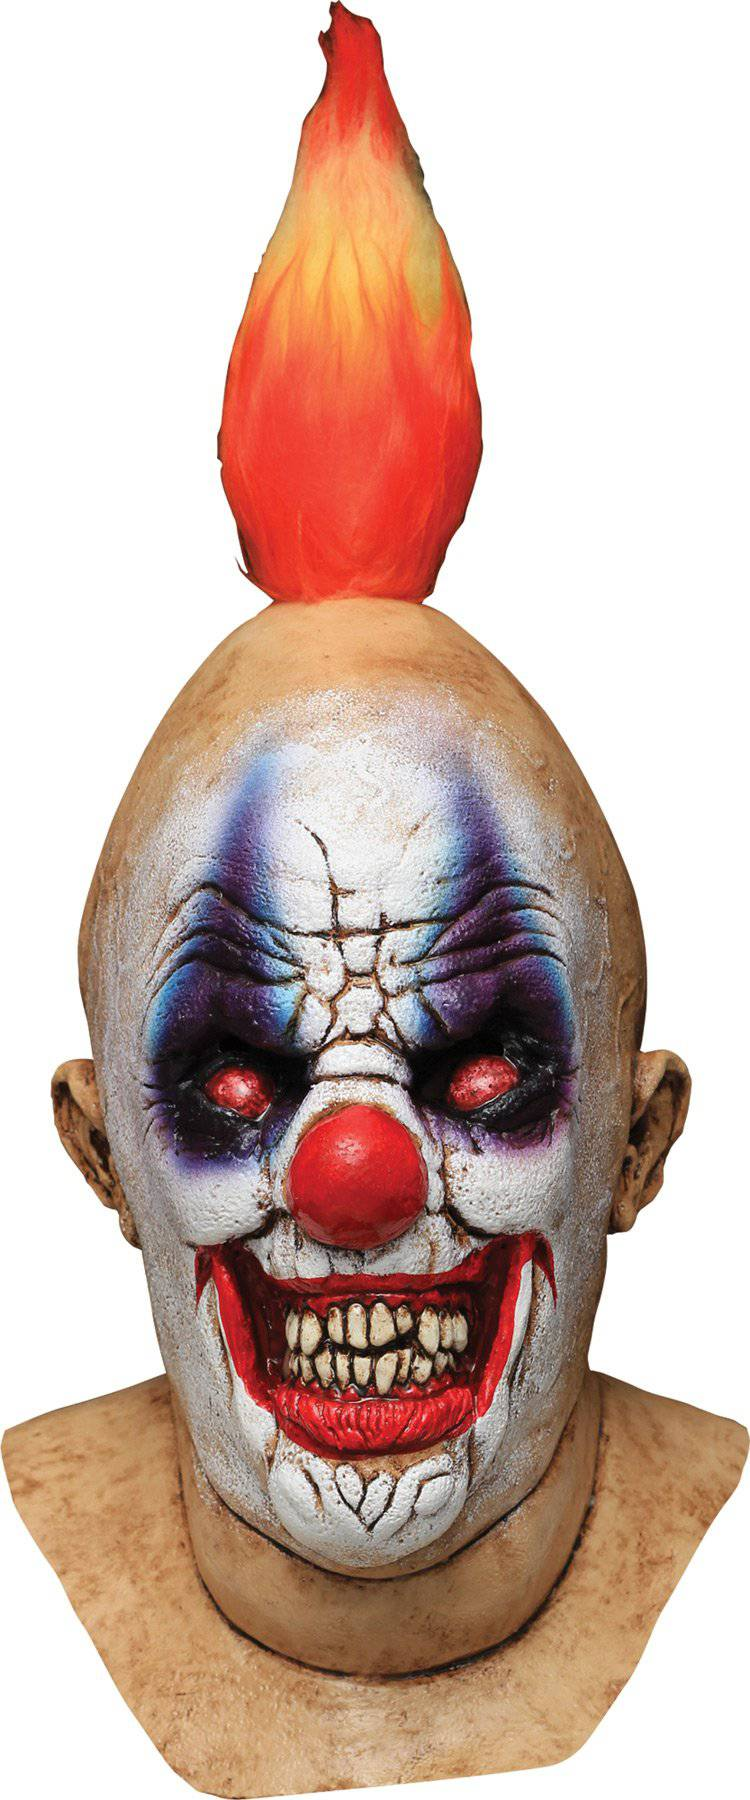 Ghoulish Productions Squancho The Clown Halloween Latex Mask - Costume Arena